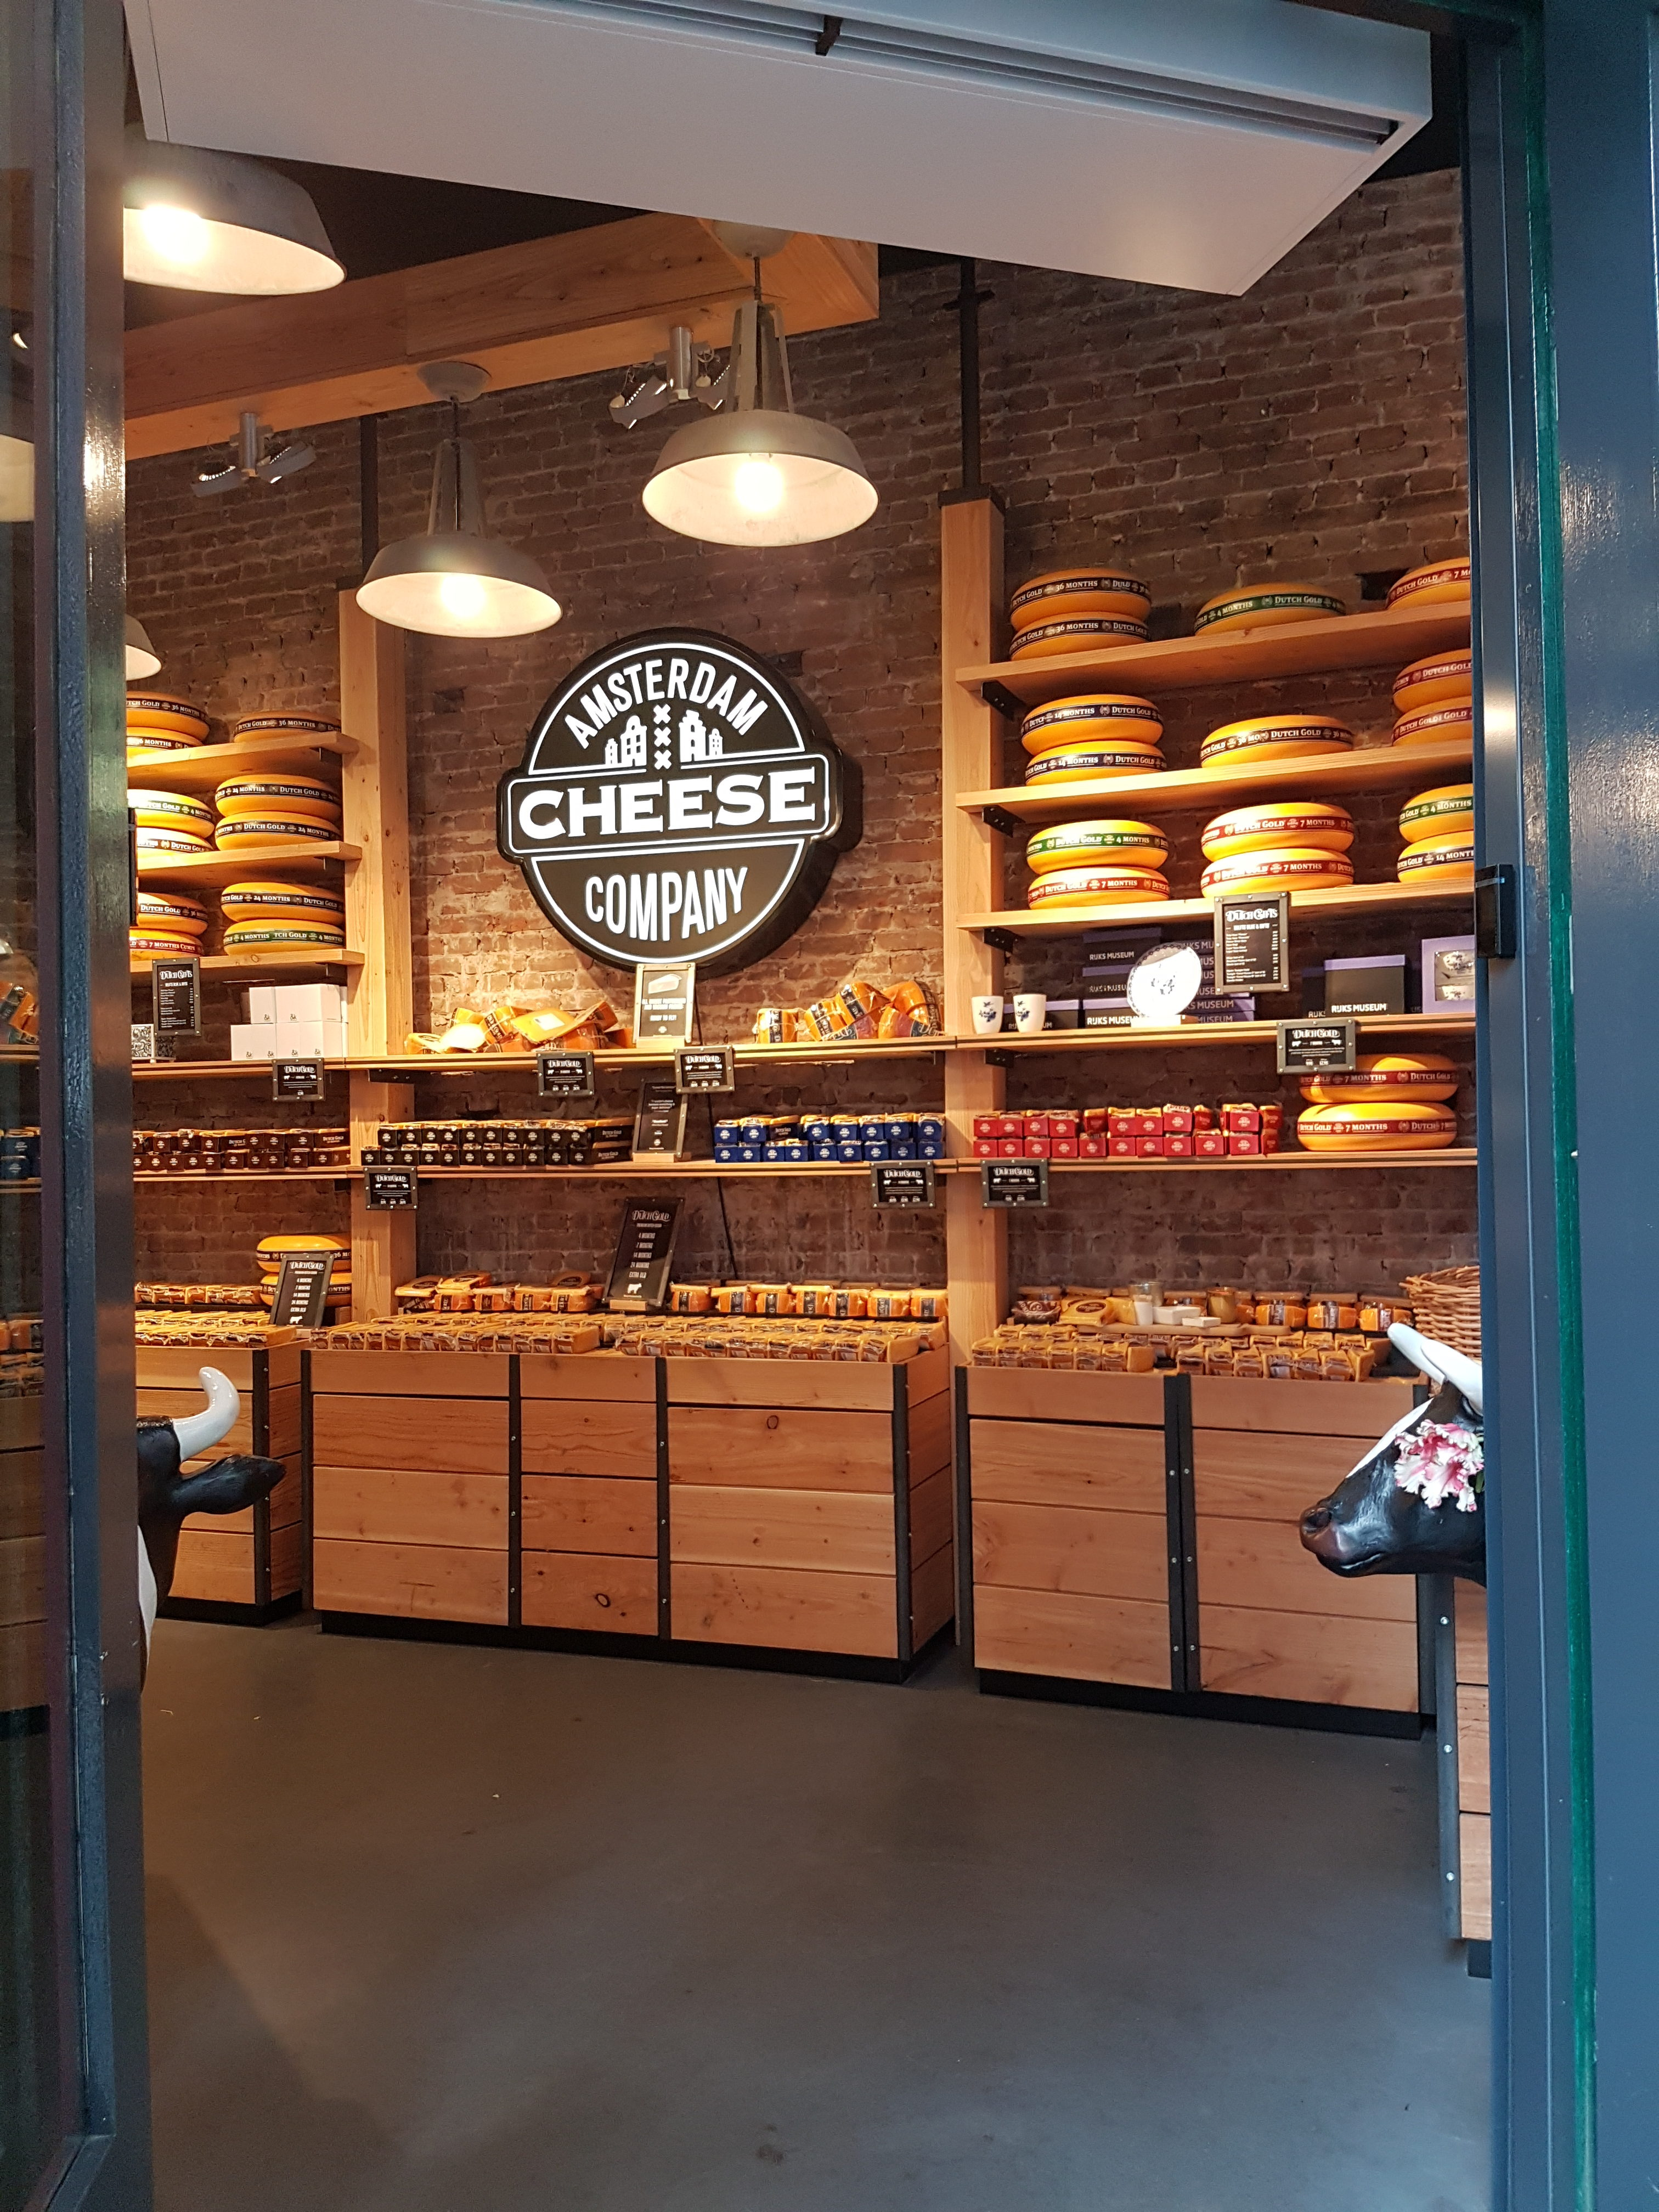 Food Diary - Amsterdam - Amsterdam Cheese Company